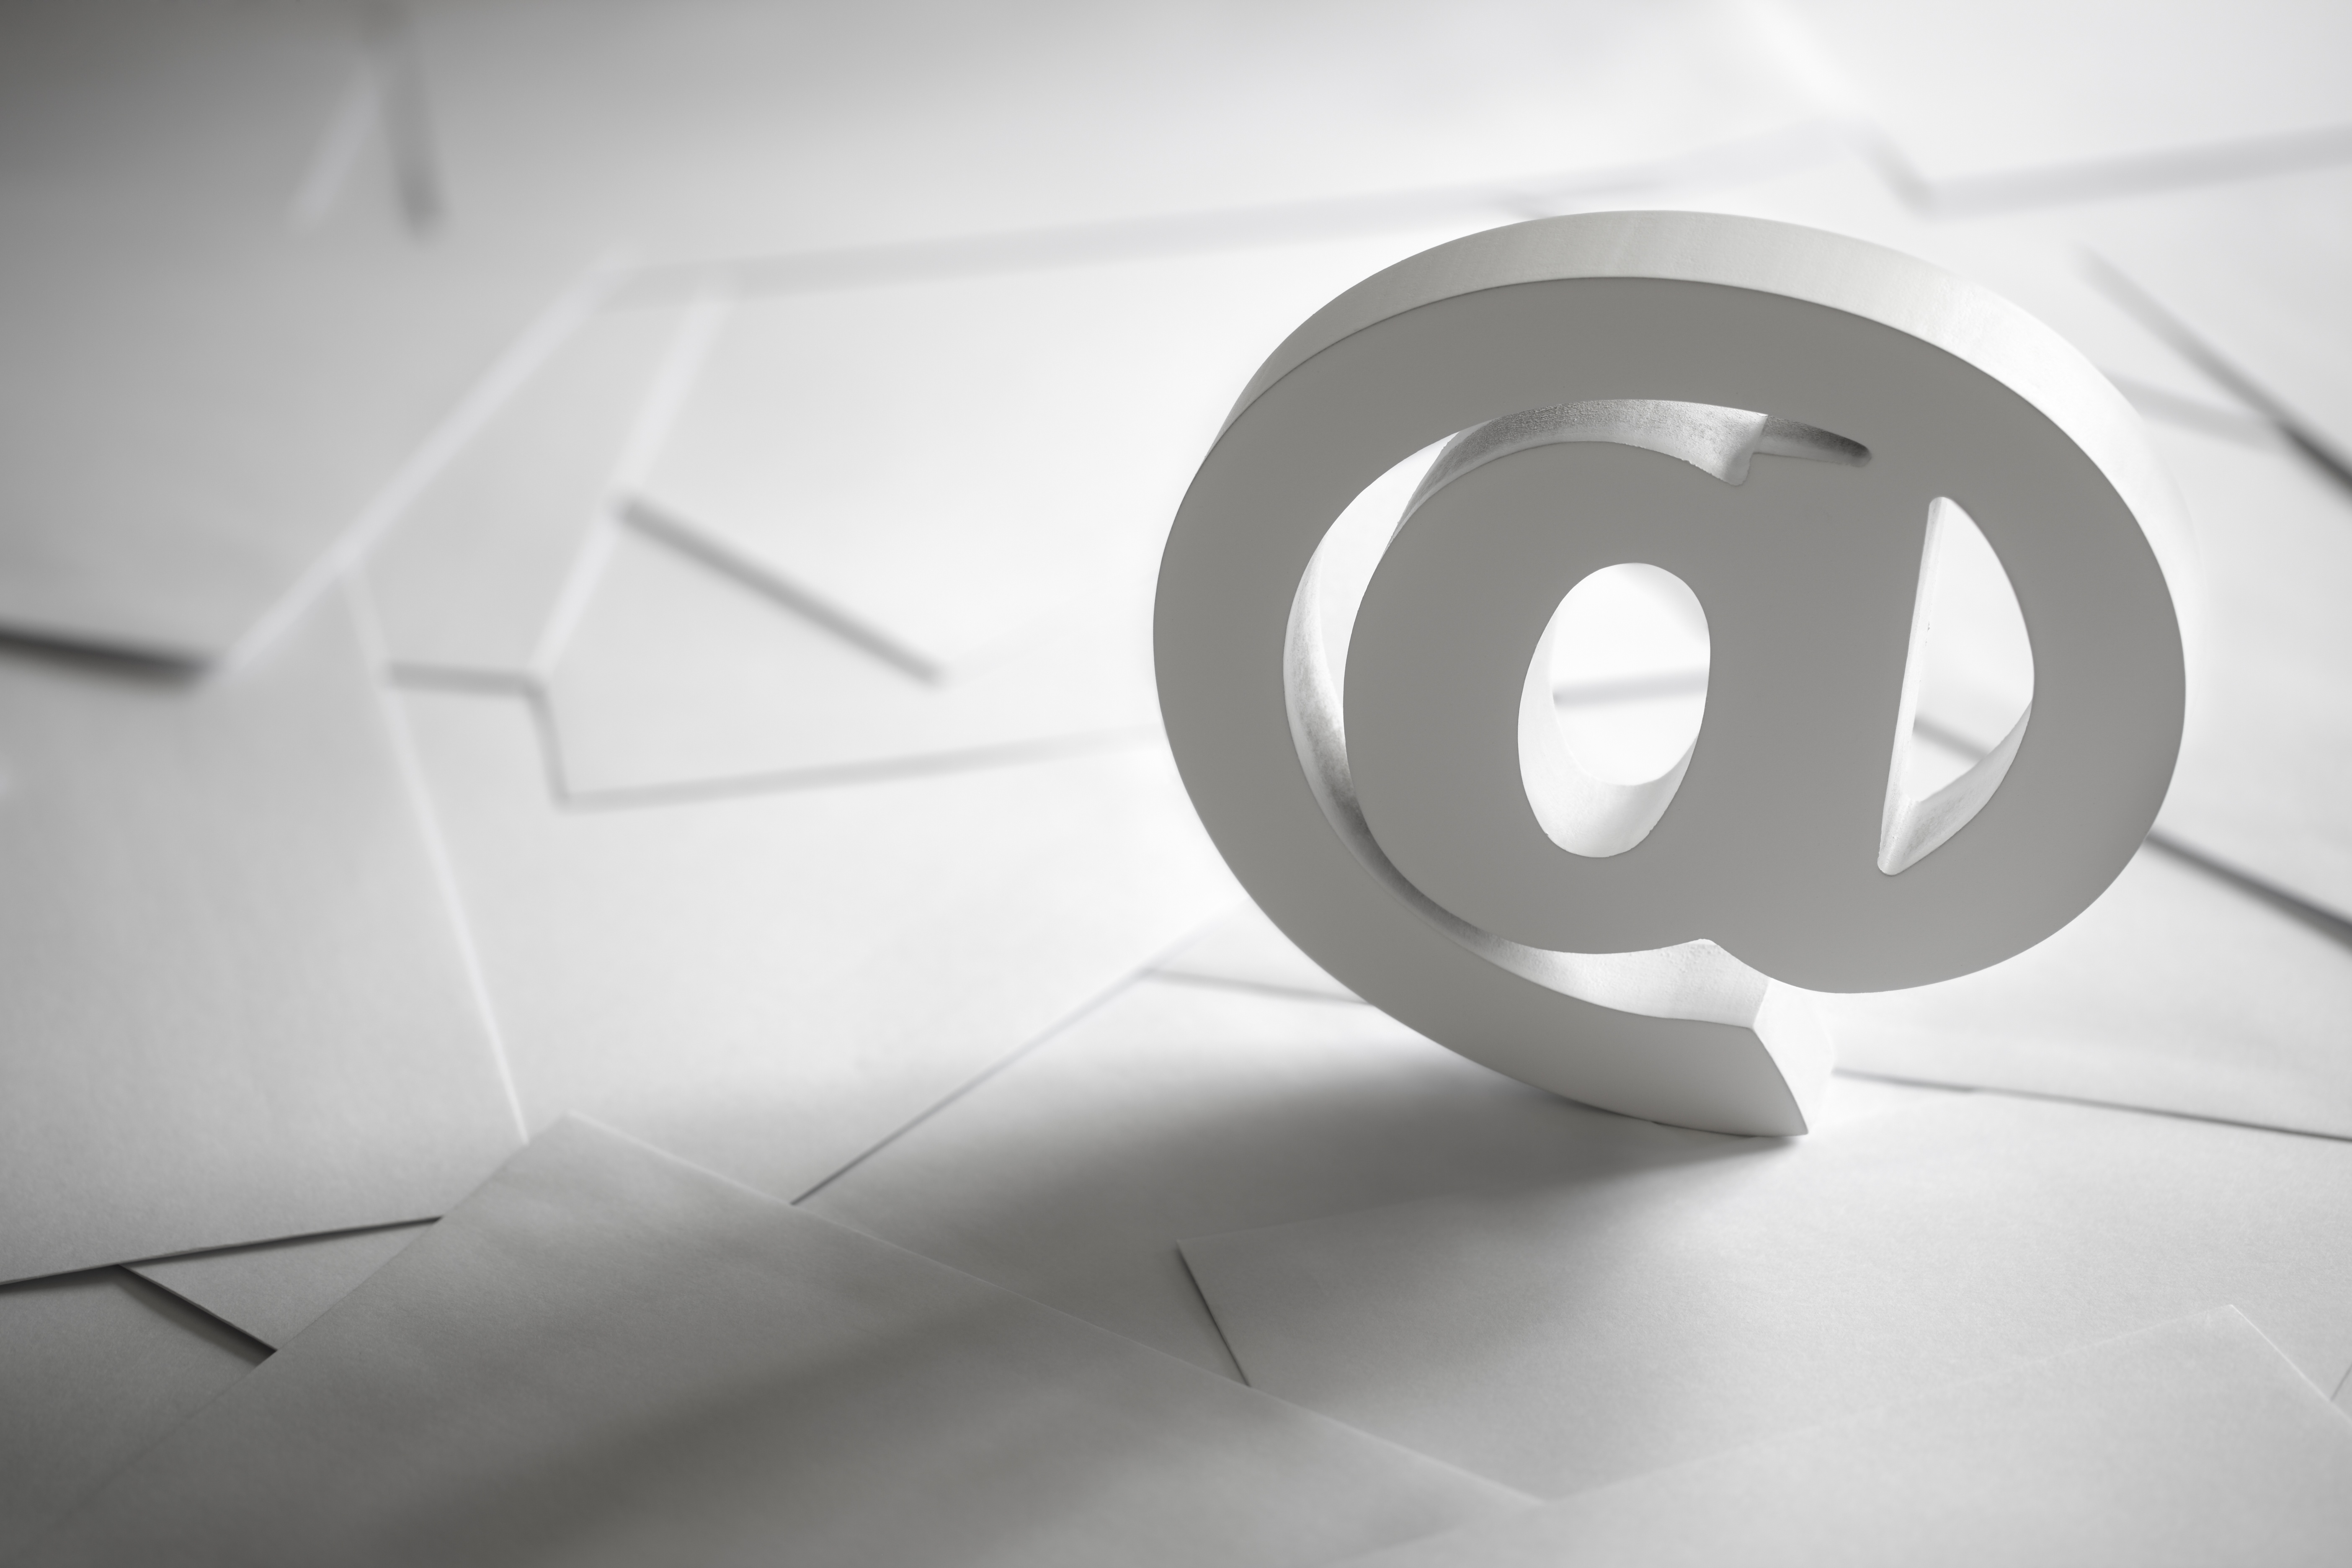 bigstock-Email-symbol-on-business-lette-88338983